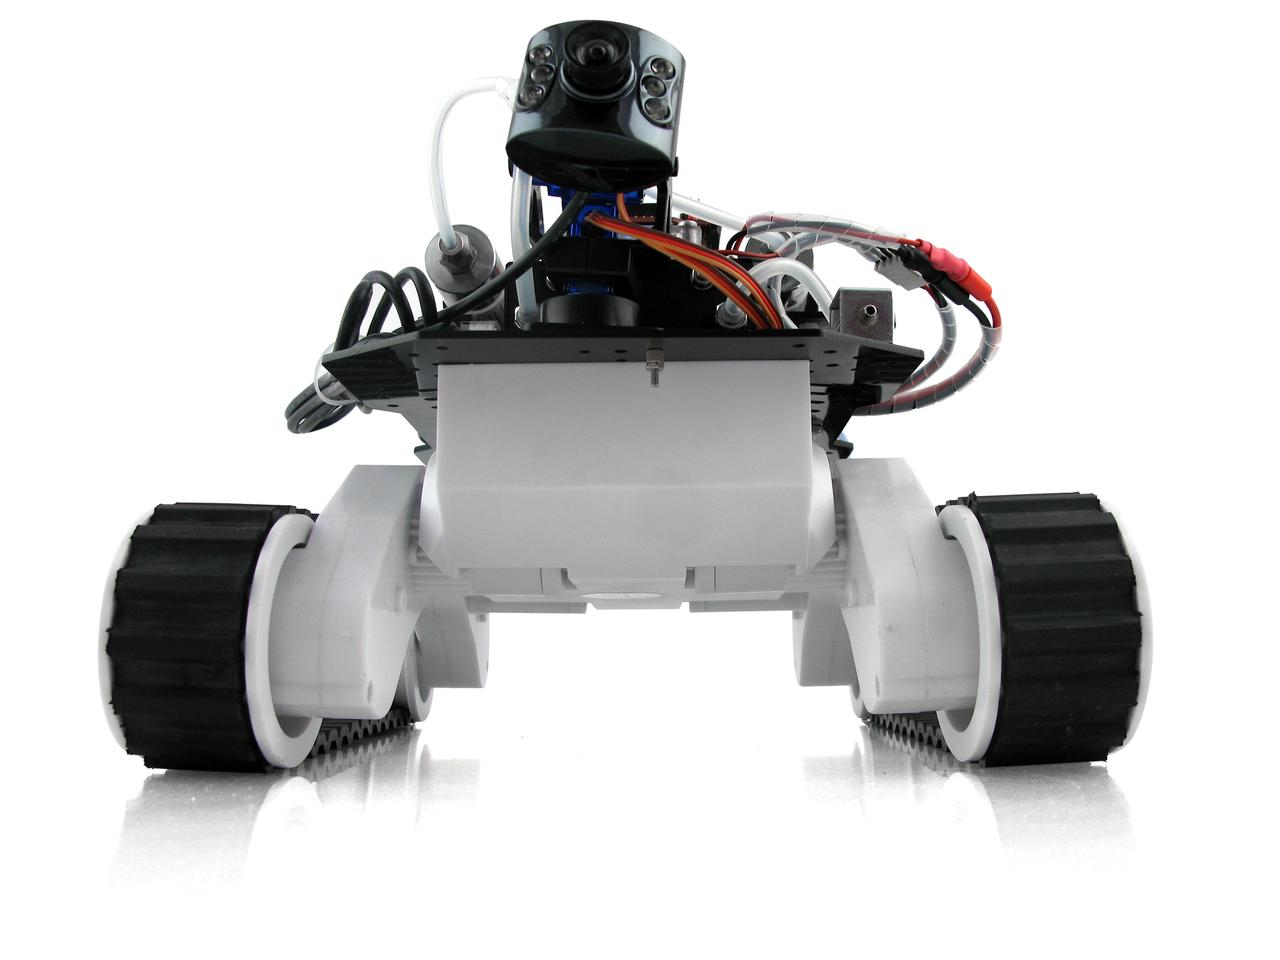 Users control the H-ROVER via their smartphone, tablet or PC, viewing a real-time video feed from its LED-equipped Bluetooth video camera